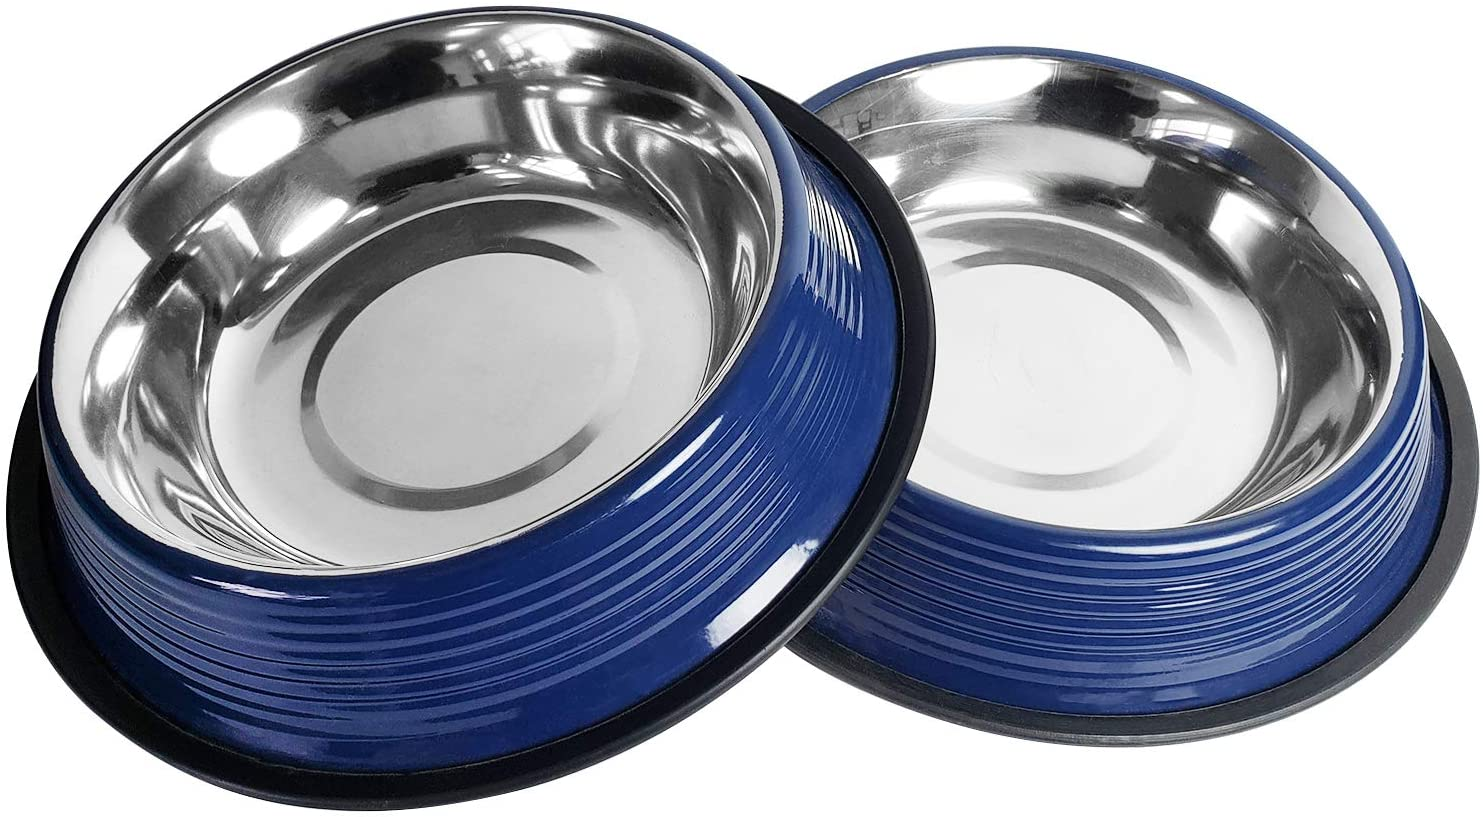 American Pet Supplies Dog Bowls, Set of 2 Non Skid & Non Tip Colored Stainless Steel Bowls for Puppies and Dogs (32 Oz Each, Blue)